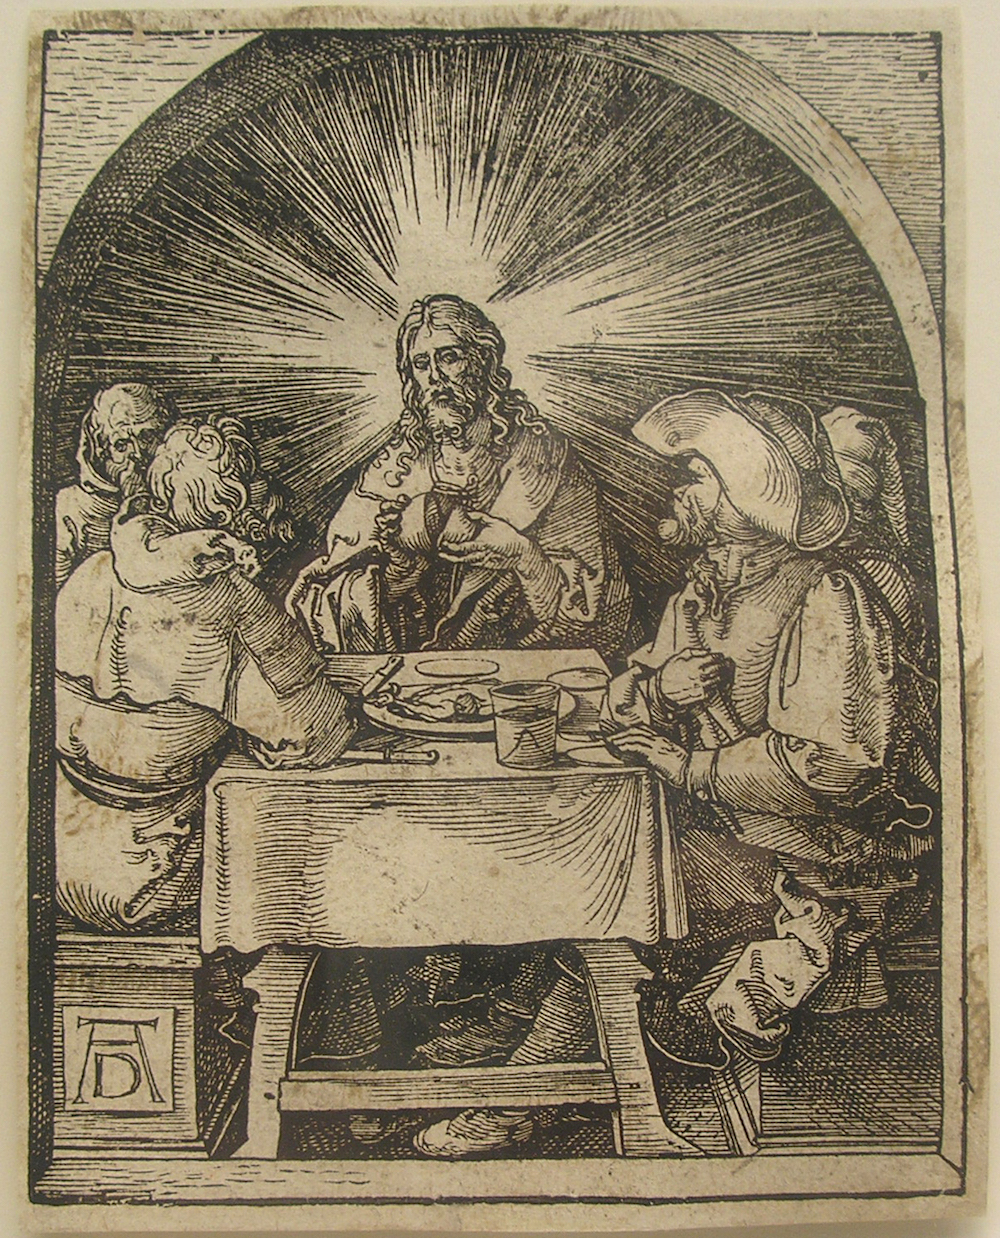 Albrecht Dürer (German, 1471-1528) Christ and the Disciples at Emmaus from The Small Passion, 1510, this impression late 16th/early 17th century Woodcut 5 1/8 x 4 in. Hofstra University Museum Collections, Gift of Robert Vogt, HU95.37